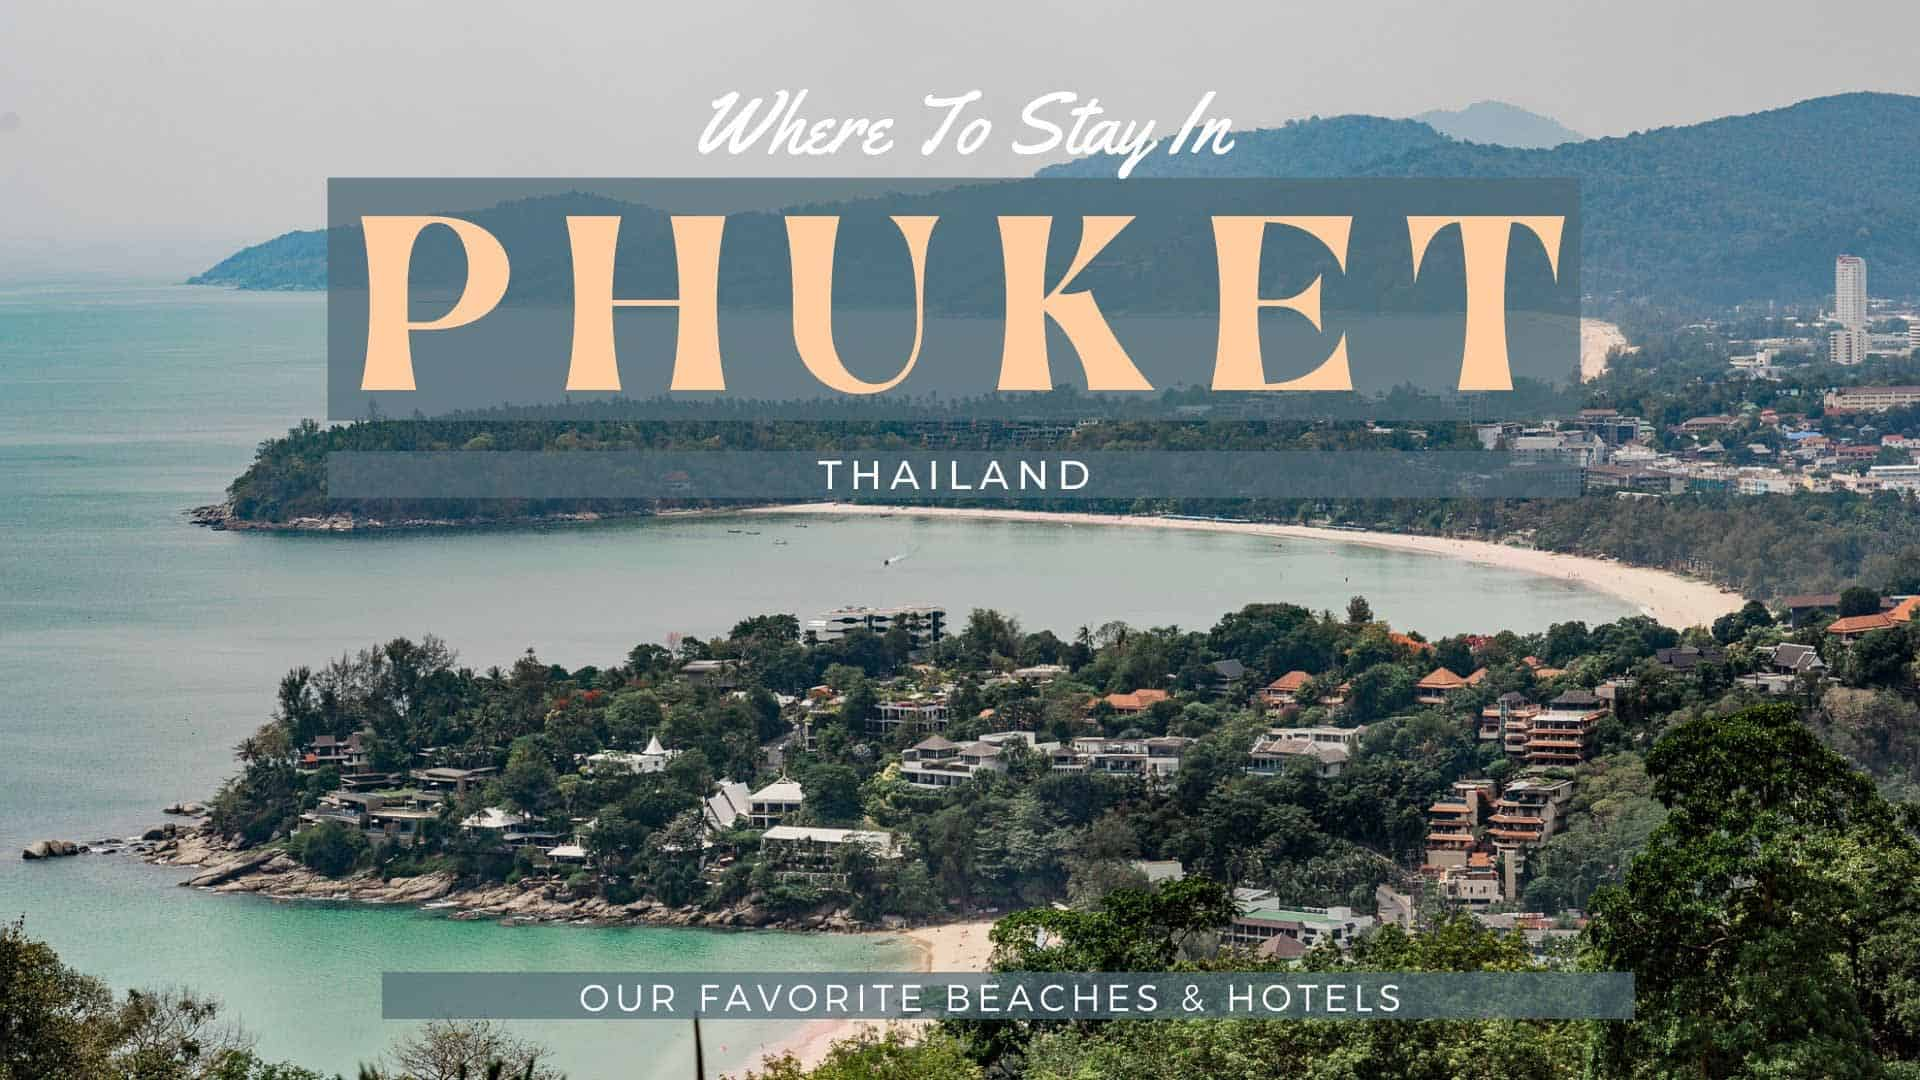 Guide On Where To Stay In Phuket, Thailand